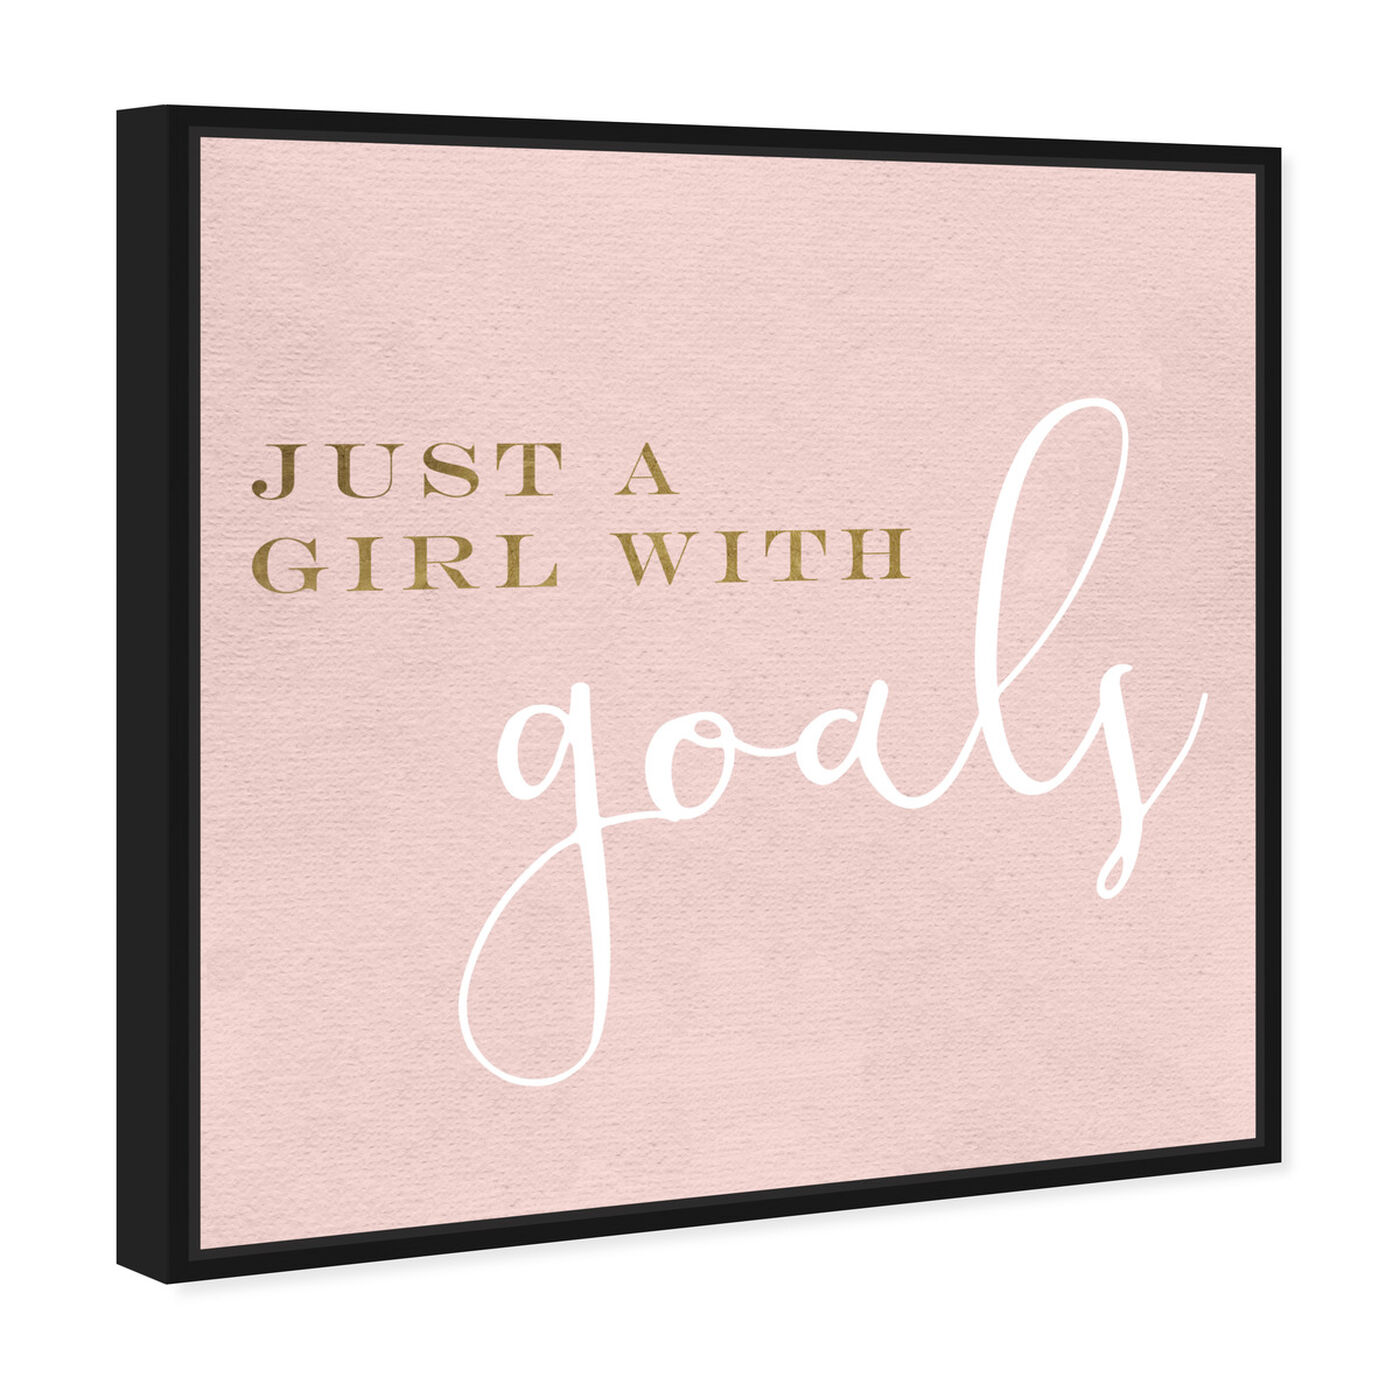 Angled view of A Girl With Goals Blush featuring typography and quotes and empowered women quotes and sayings art.